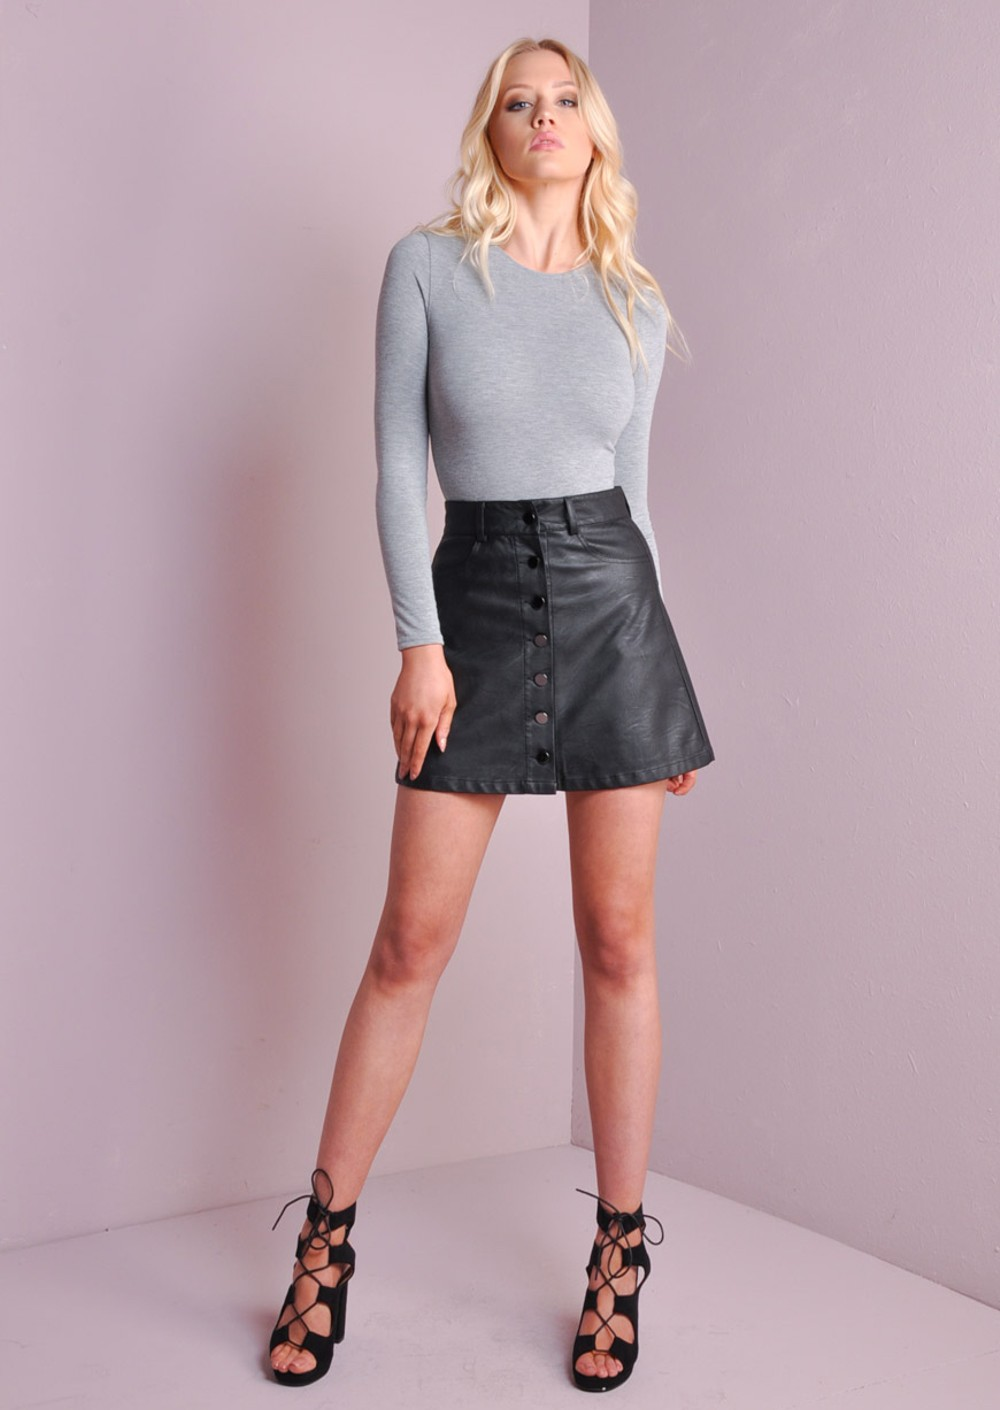 Up Leather Skirt 27